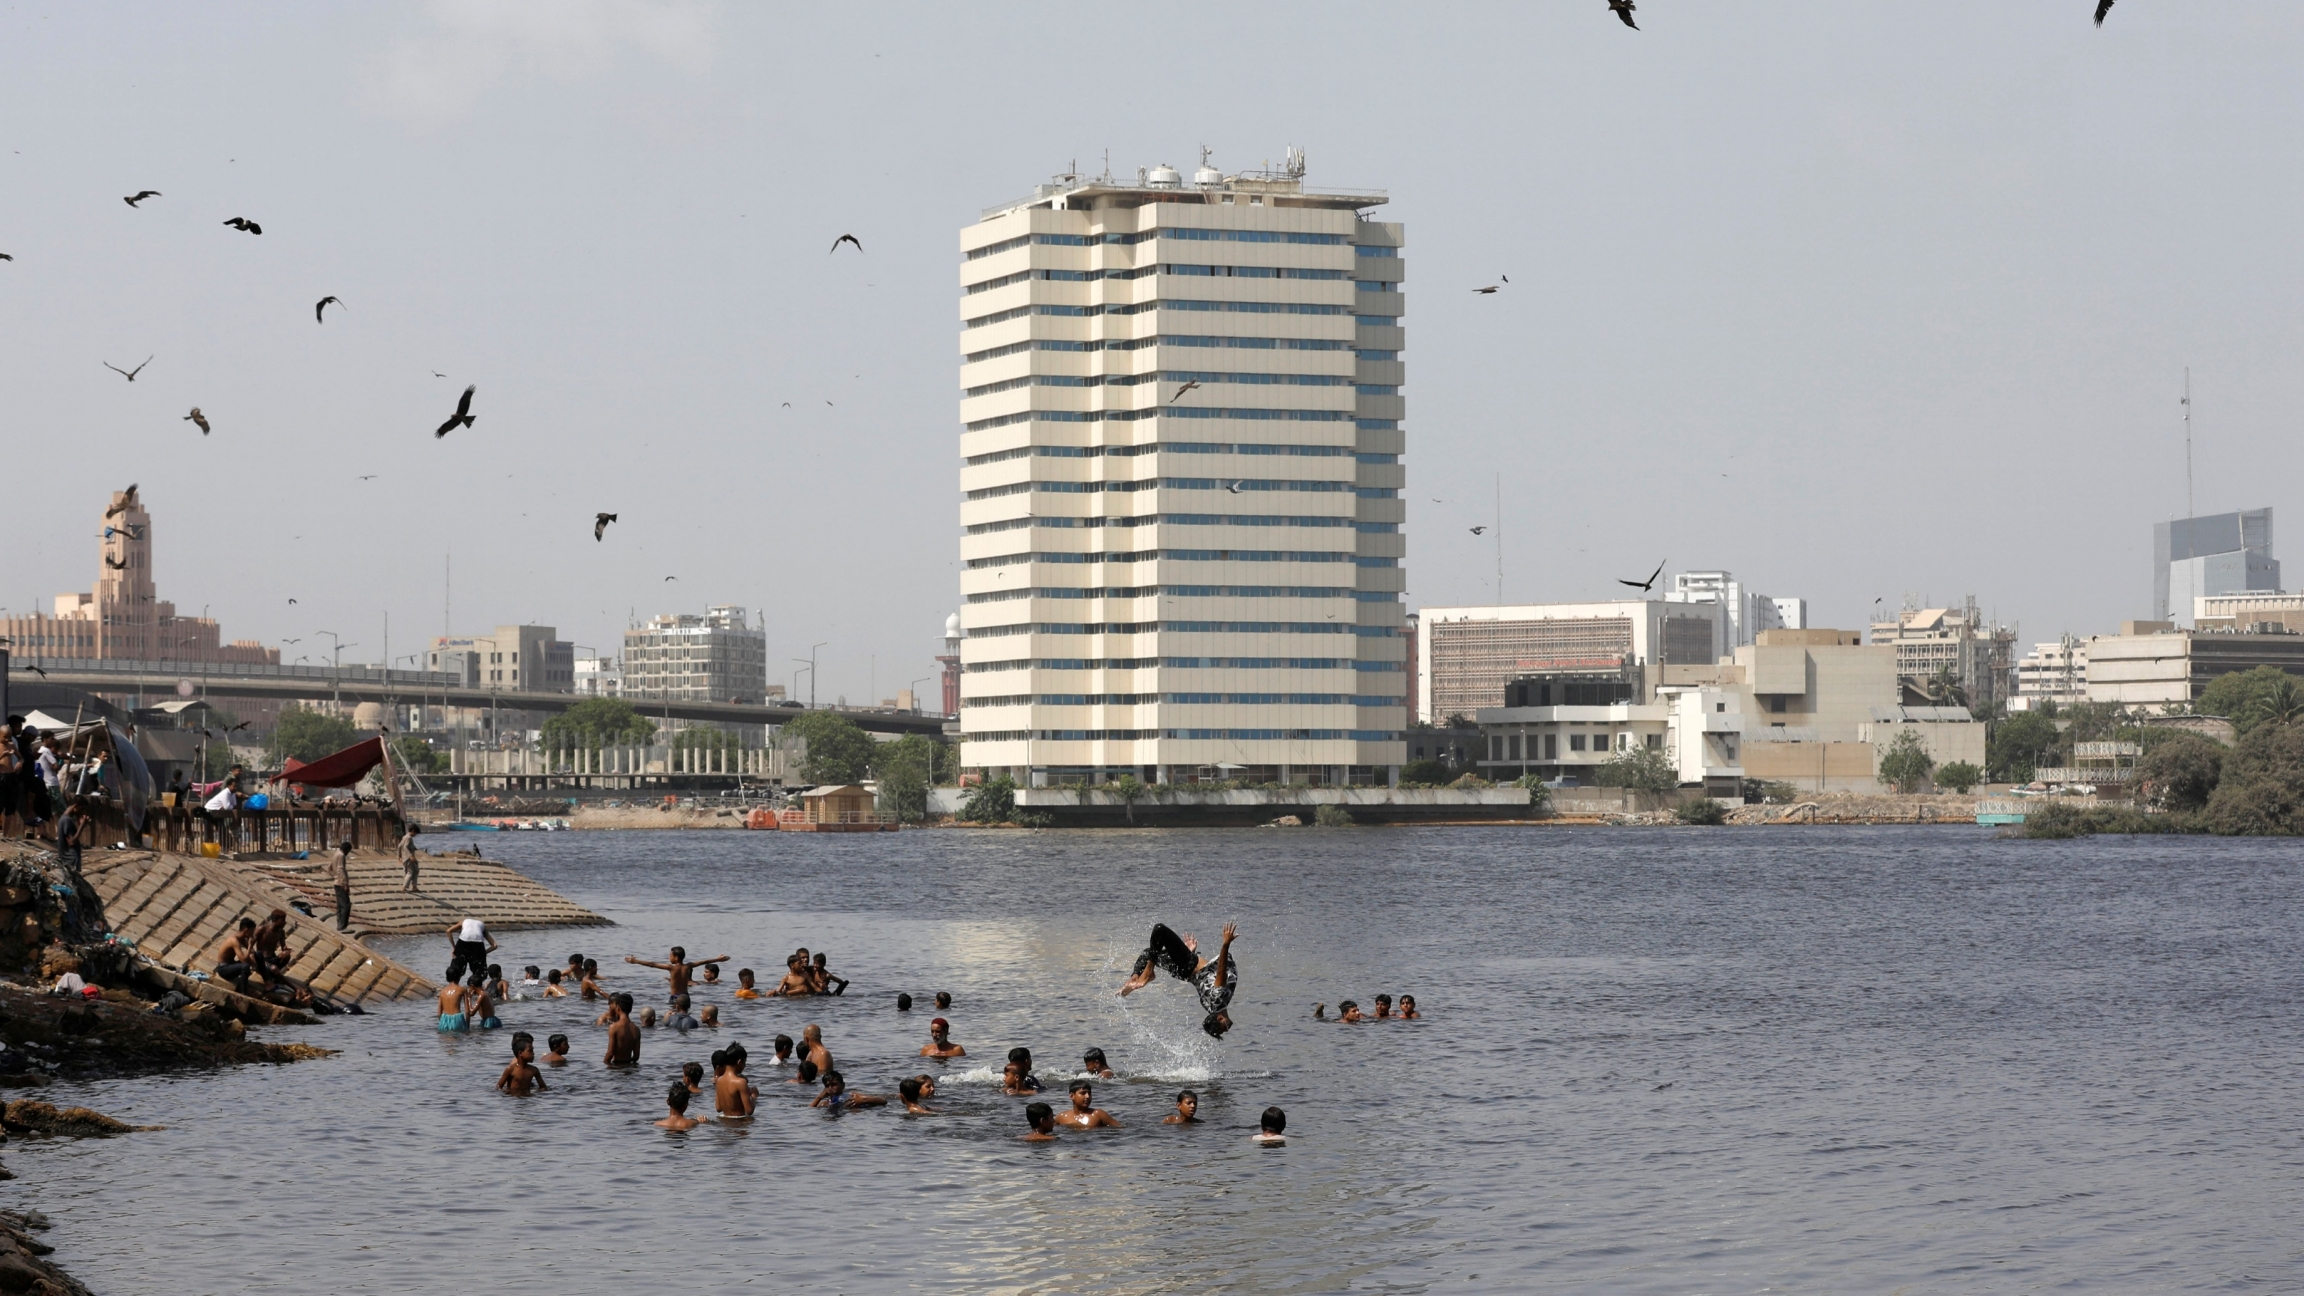 Adults and children swim in water near a large, white building in the background and birds flying overhead